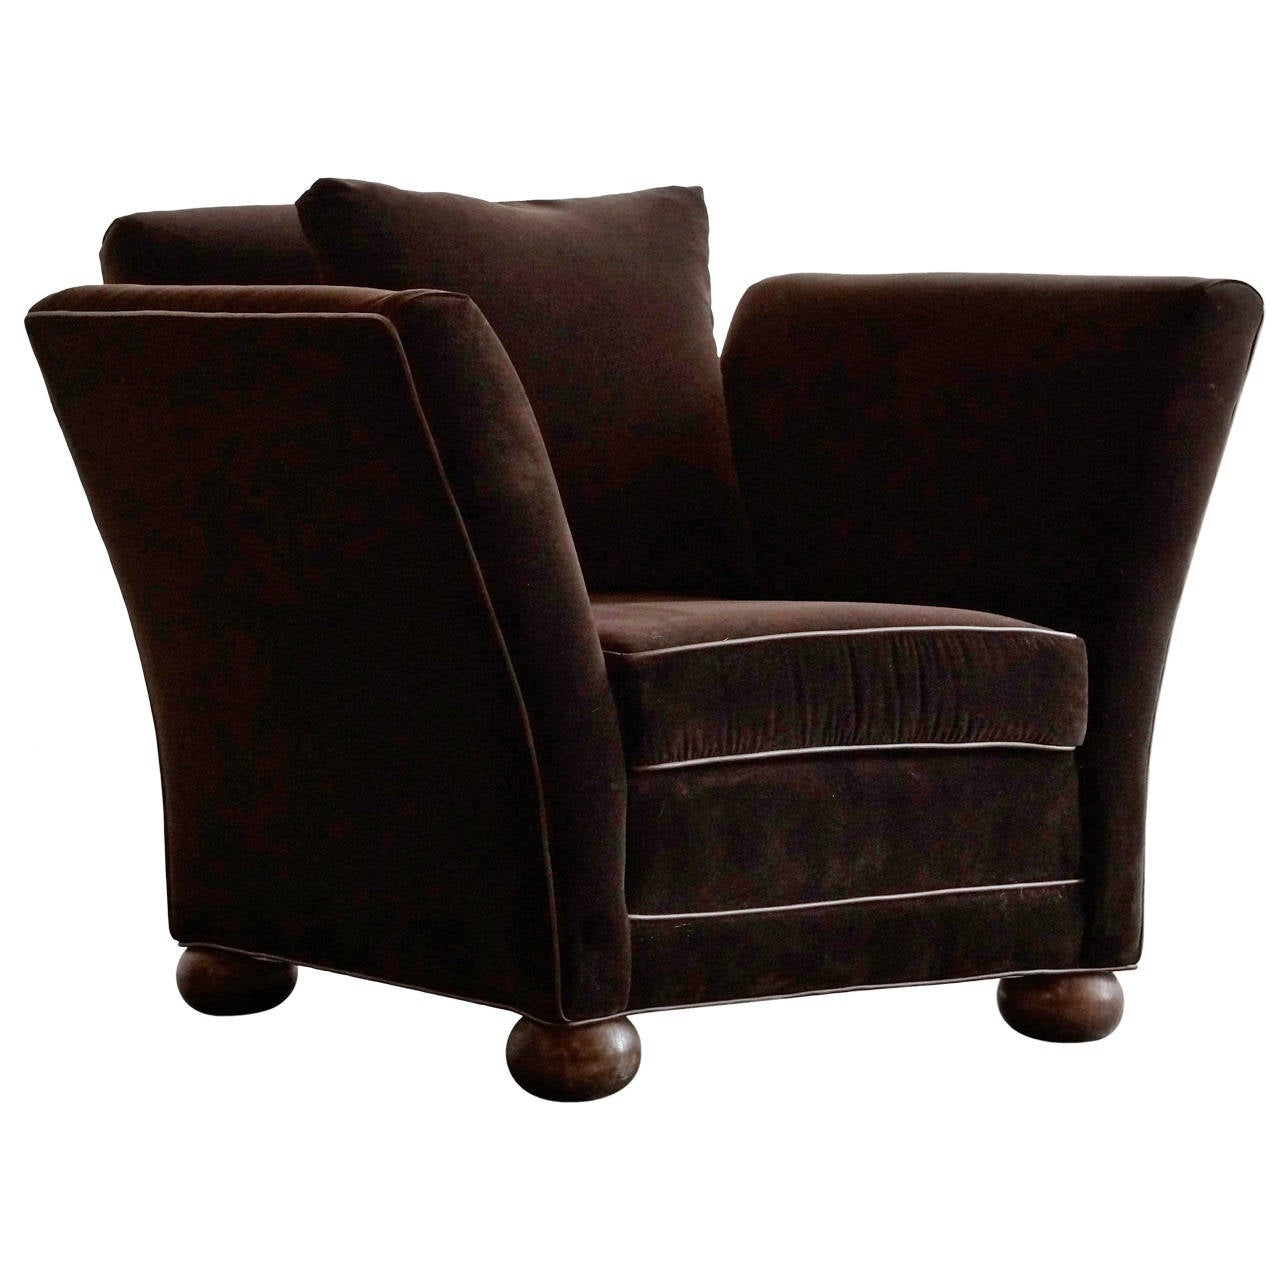 Velvet Club Chair Large Vintage Club Chair In Brown Velvet At 1stdibs